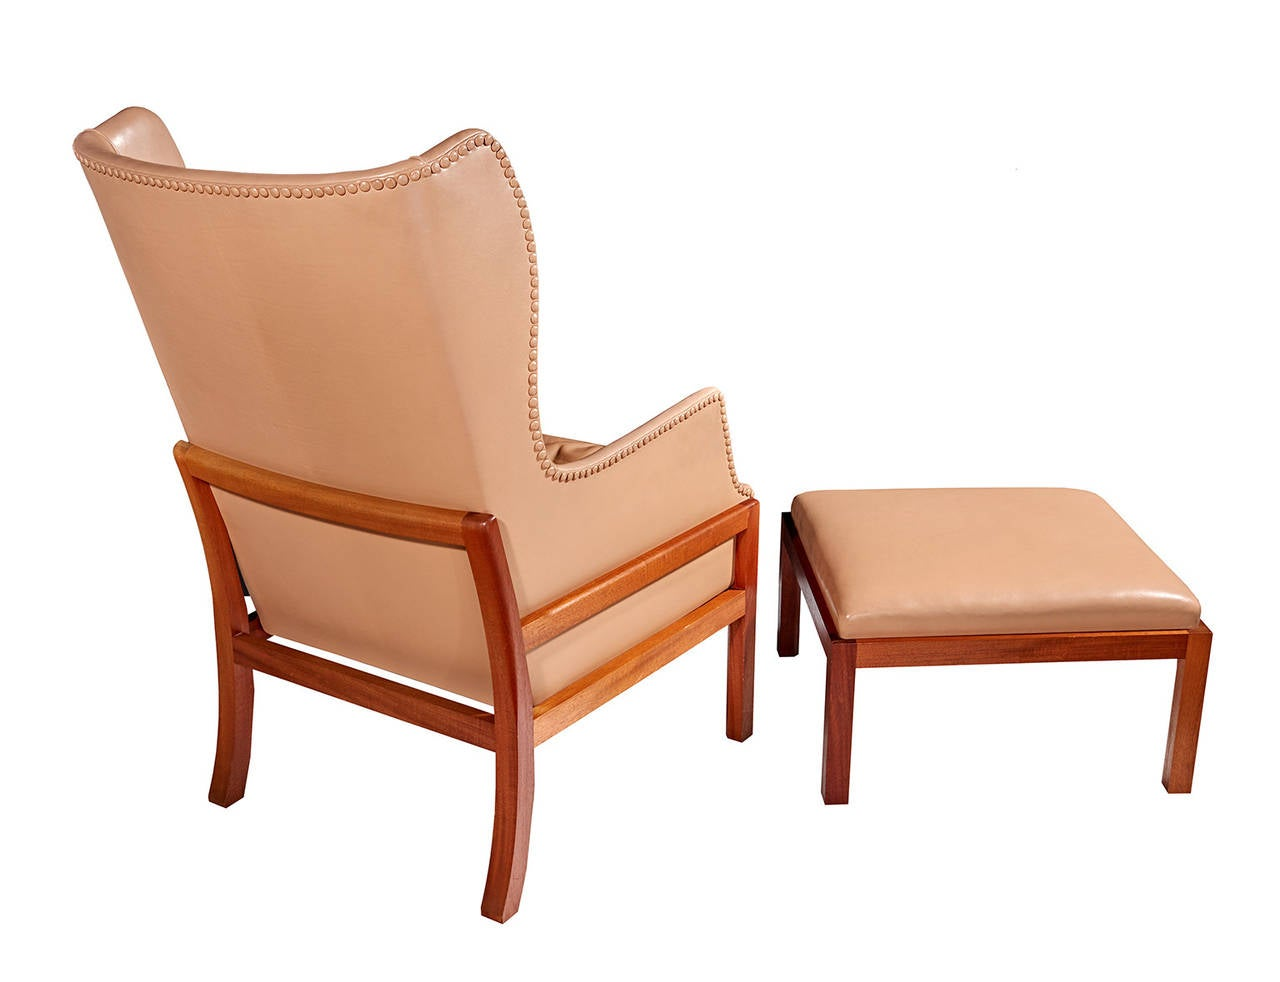 Wingback Chair and Ottoman by Mogens Koch at 1stdibs